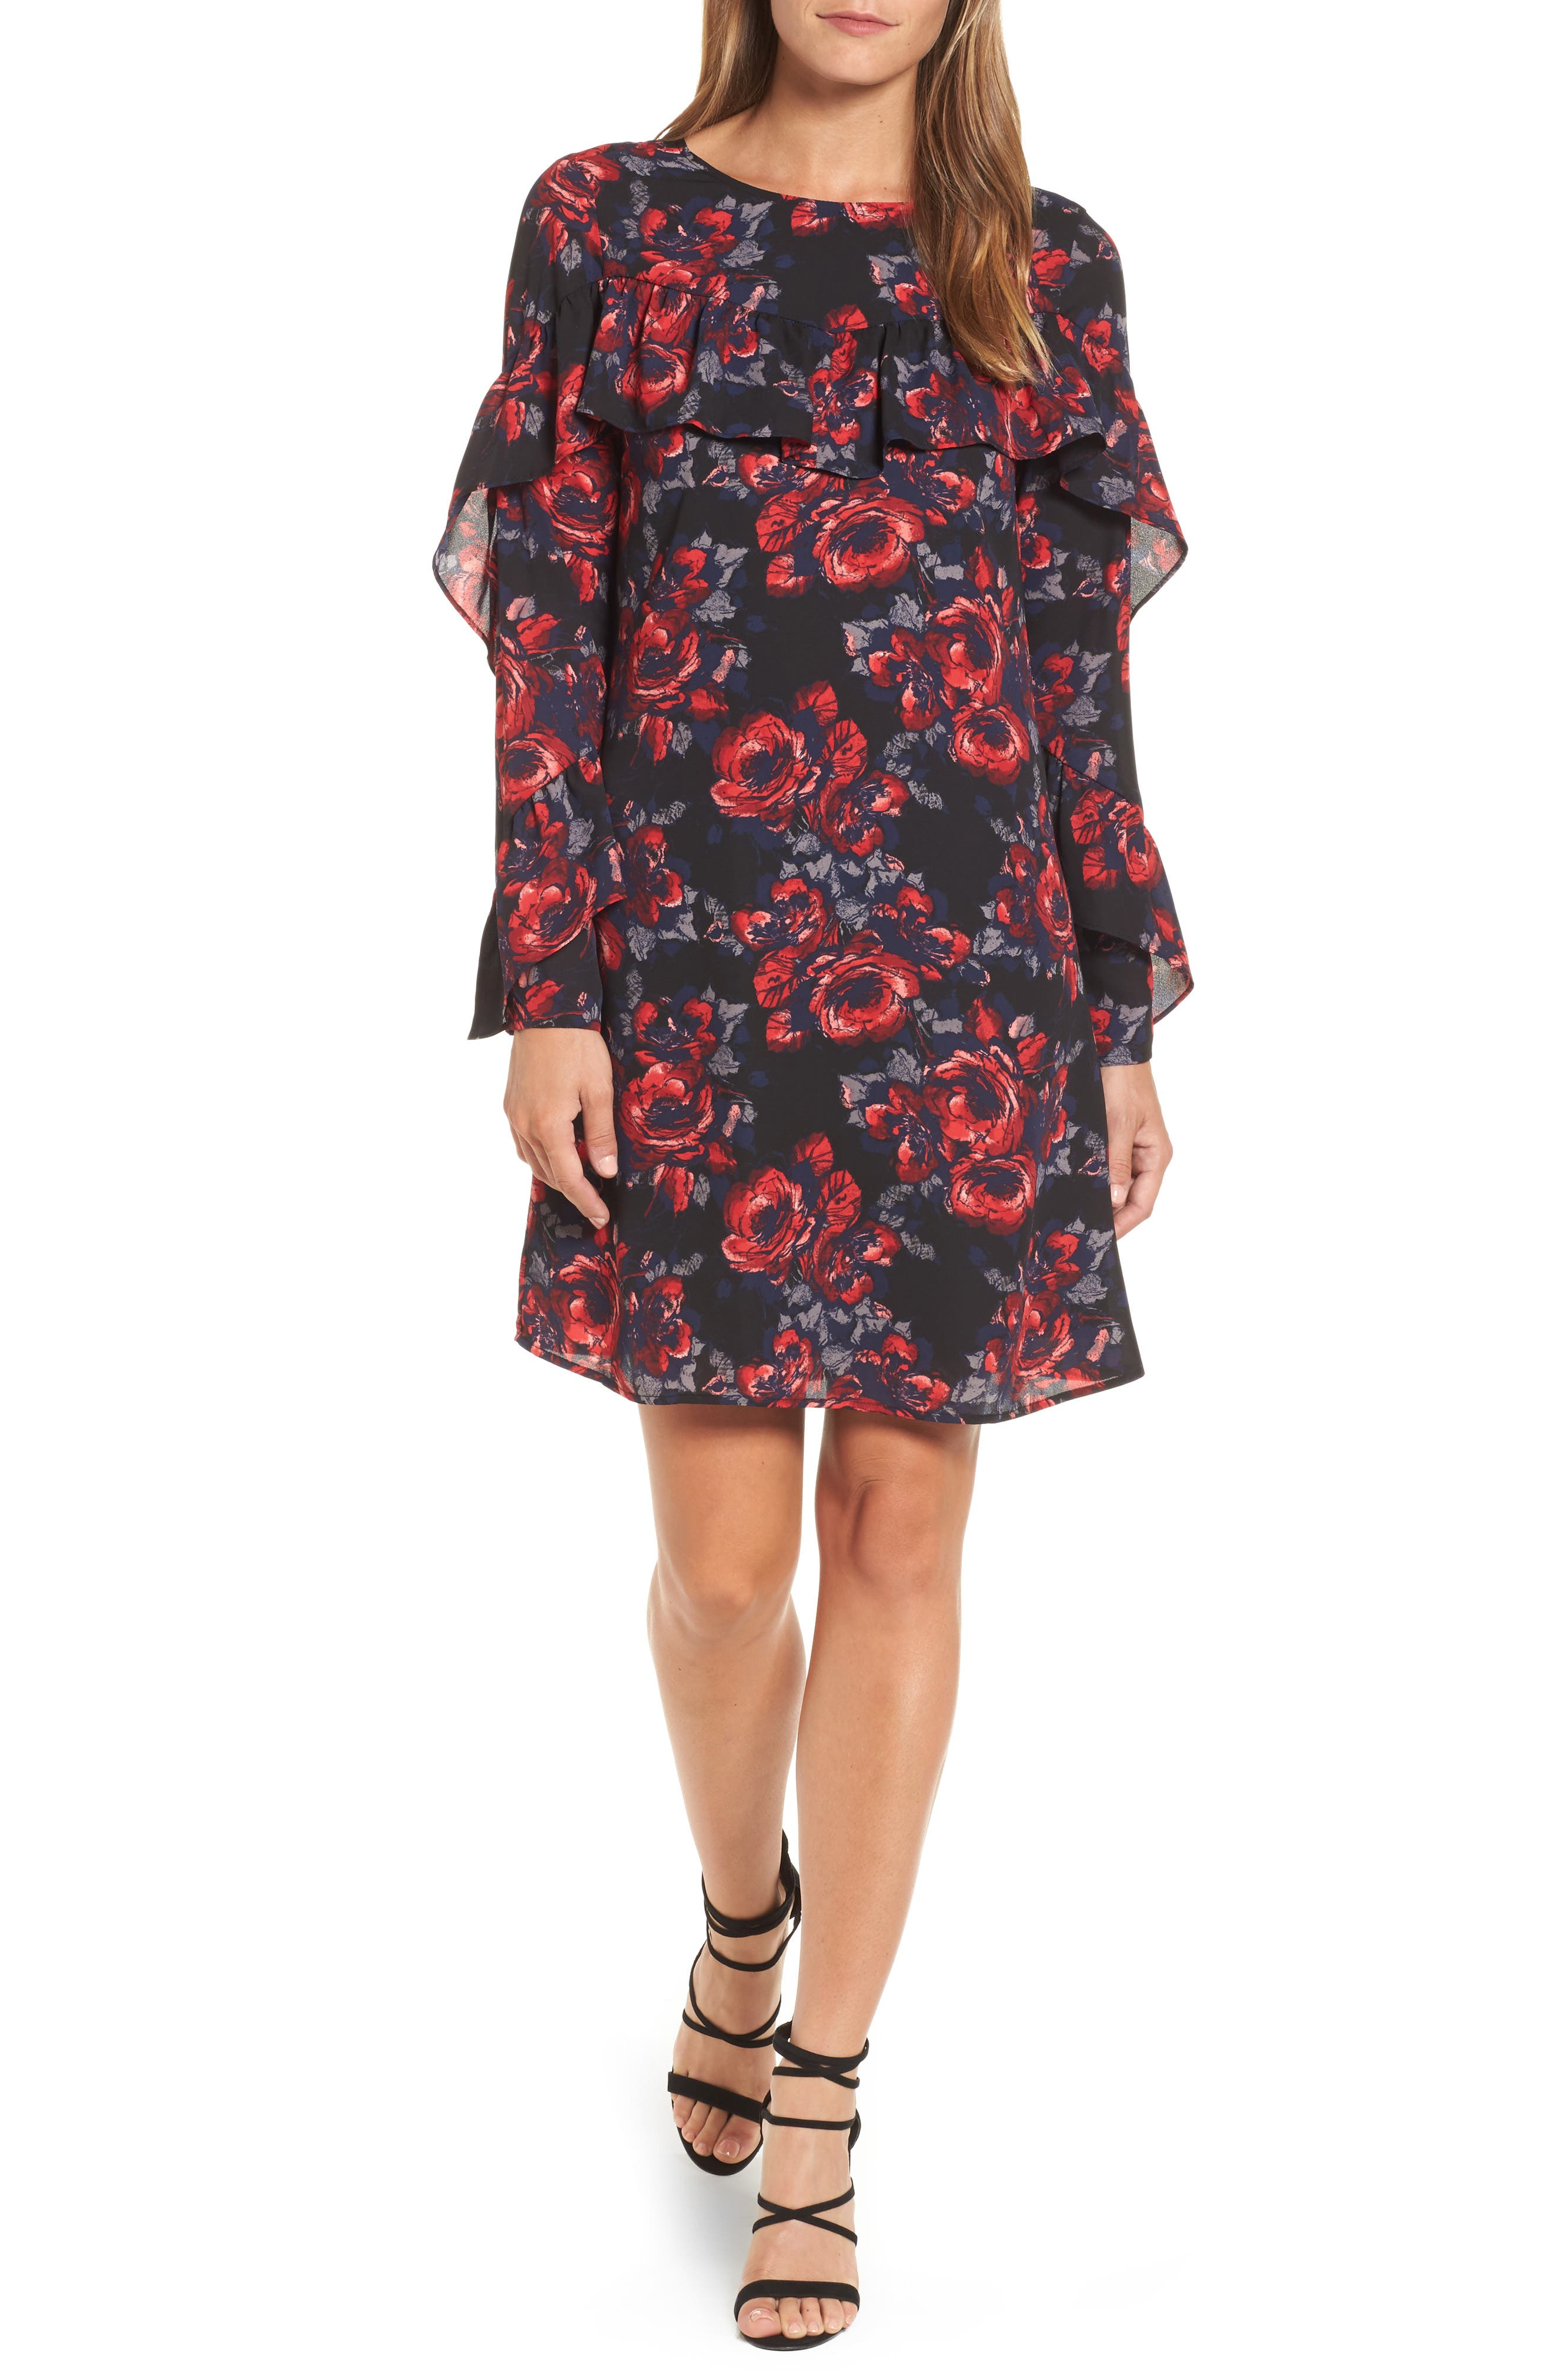 Ruffle Shift Dress,                         Main,                         color, Black- Red Wild Floral